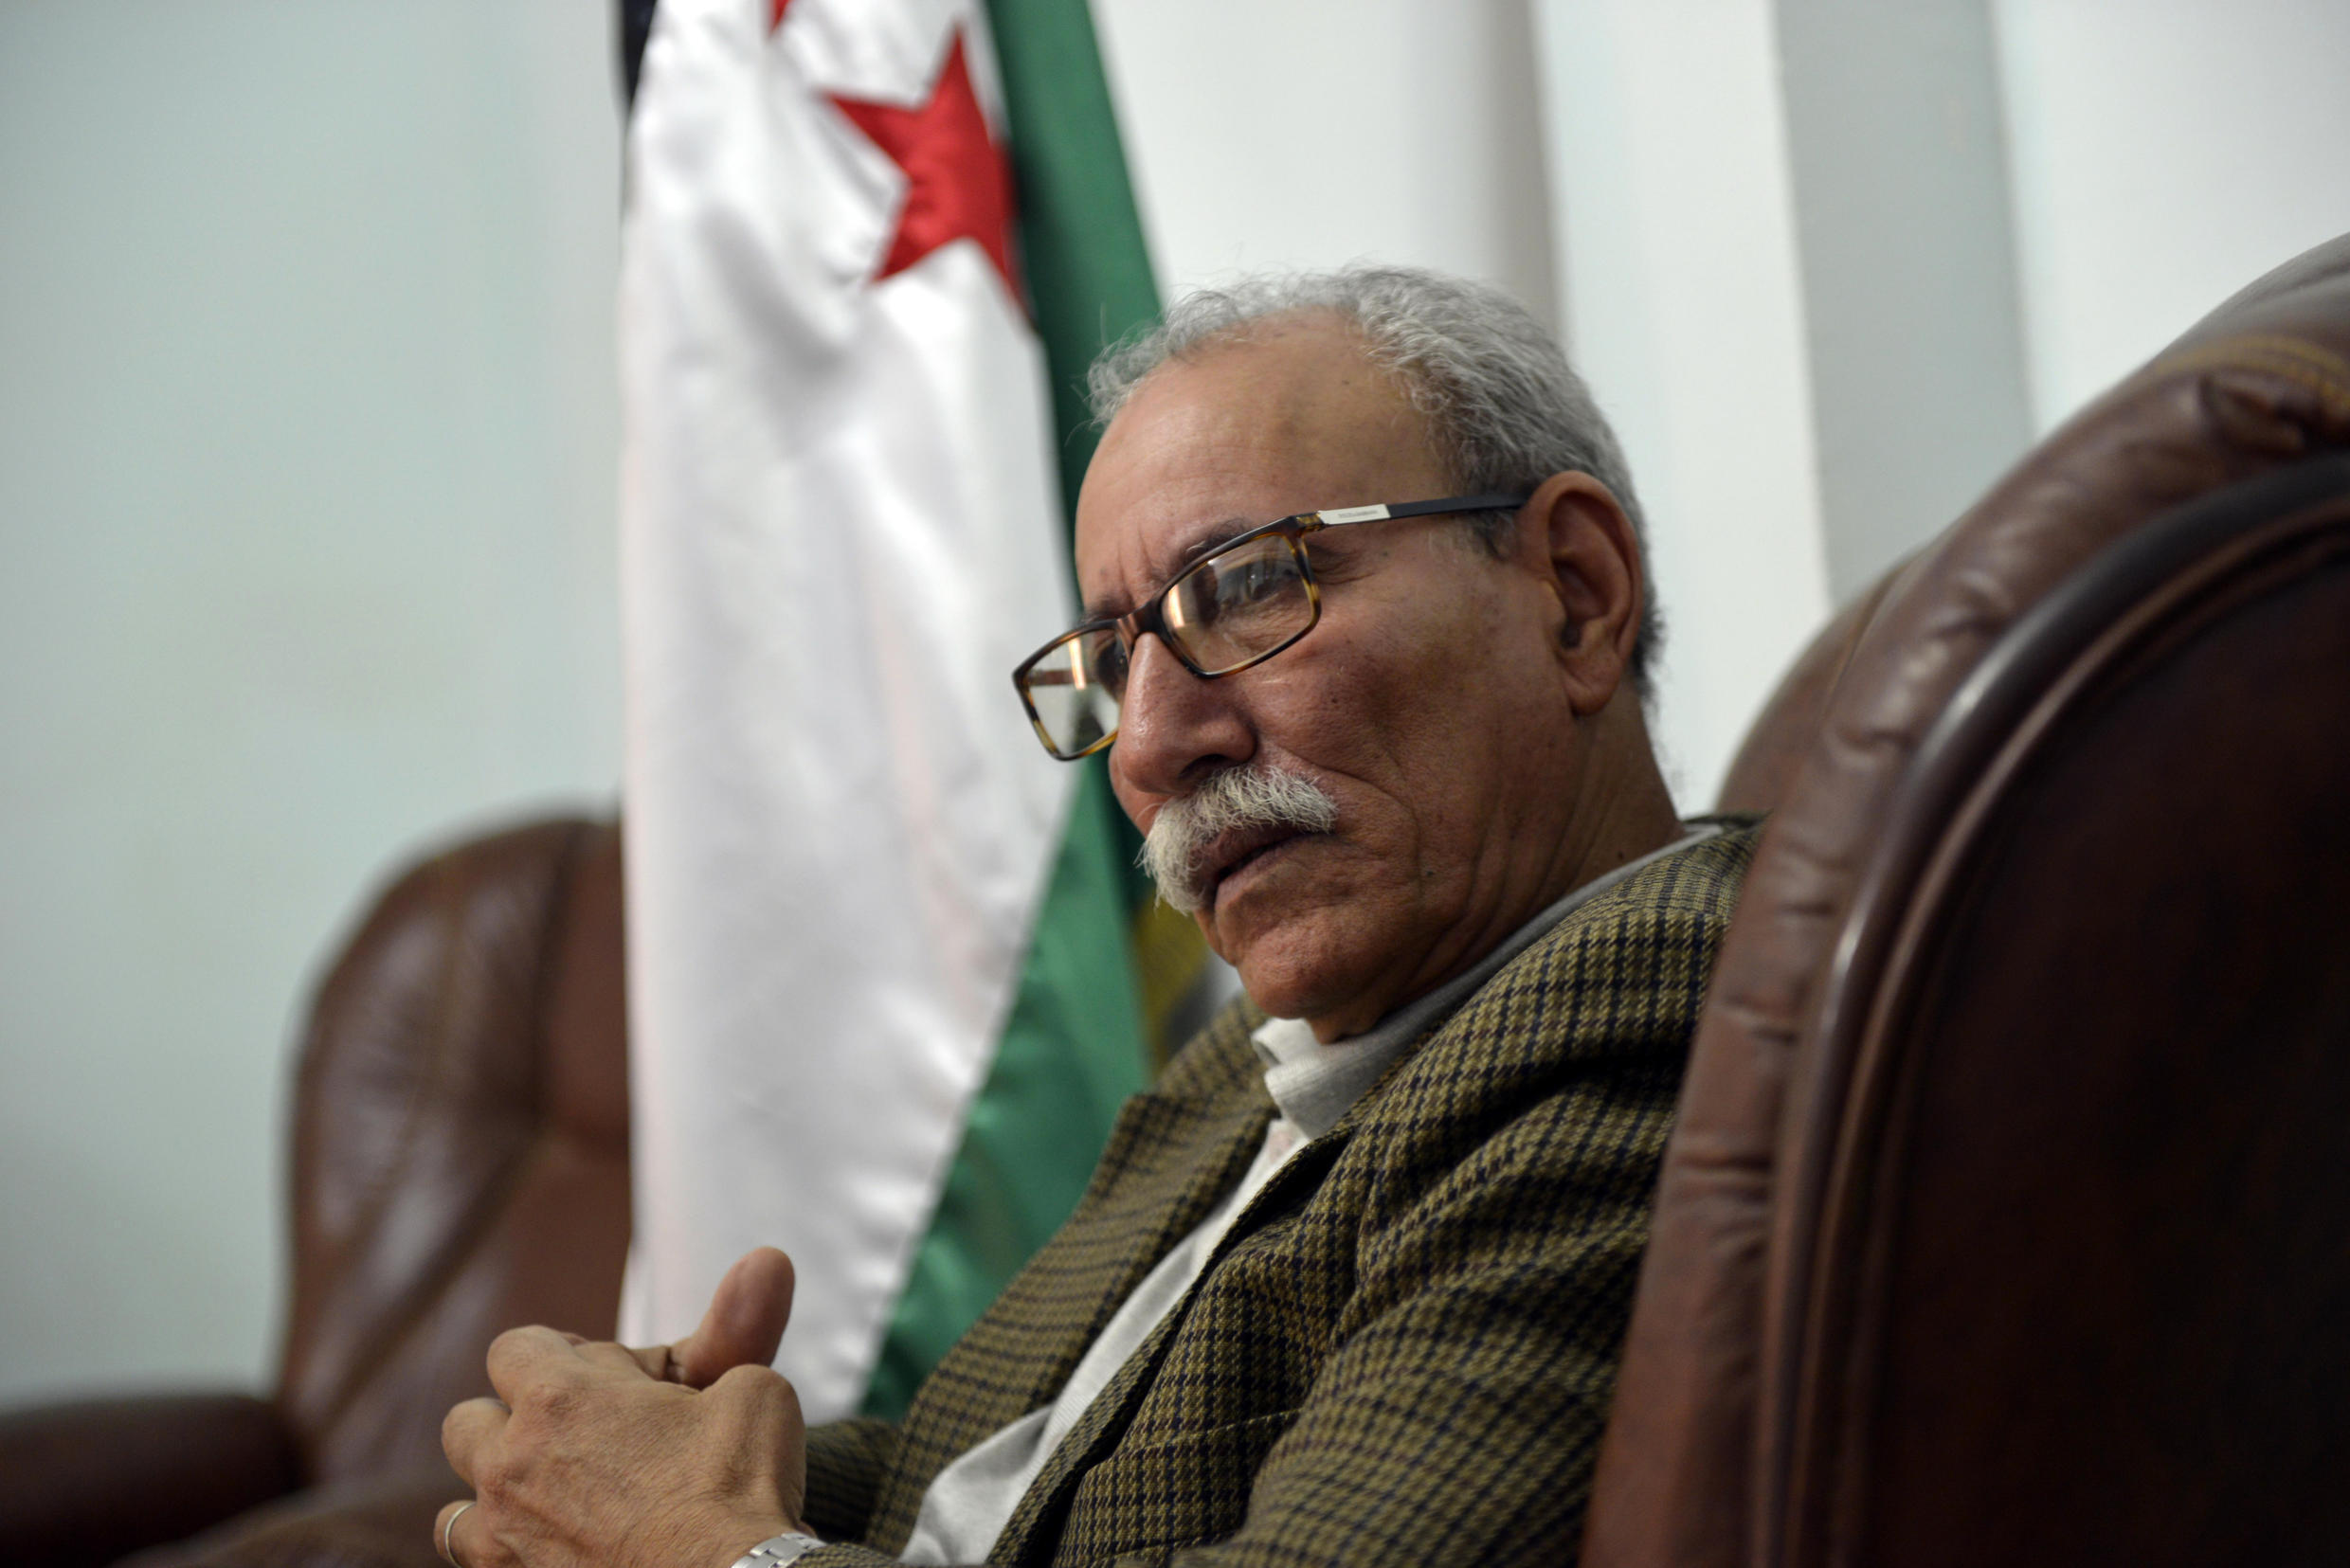 Brahim Ghali, Polisario leader, during interview with AFP, Algeria, 2017.